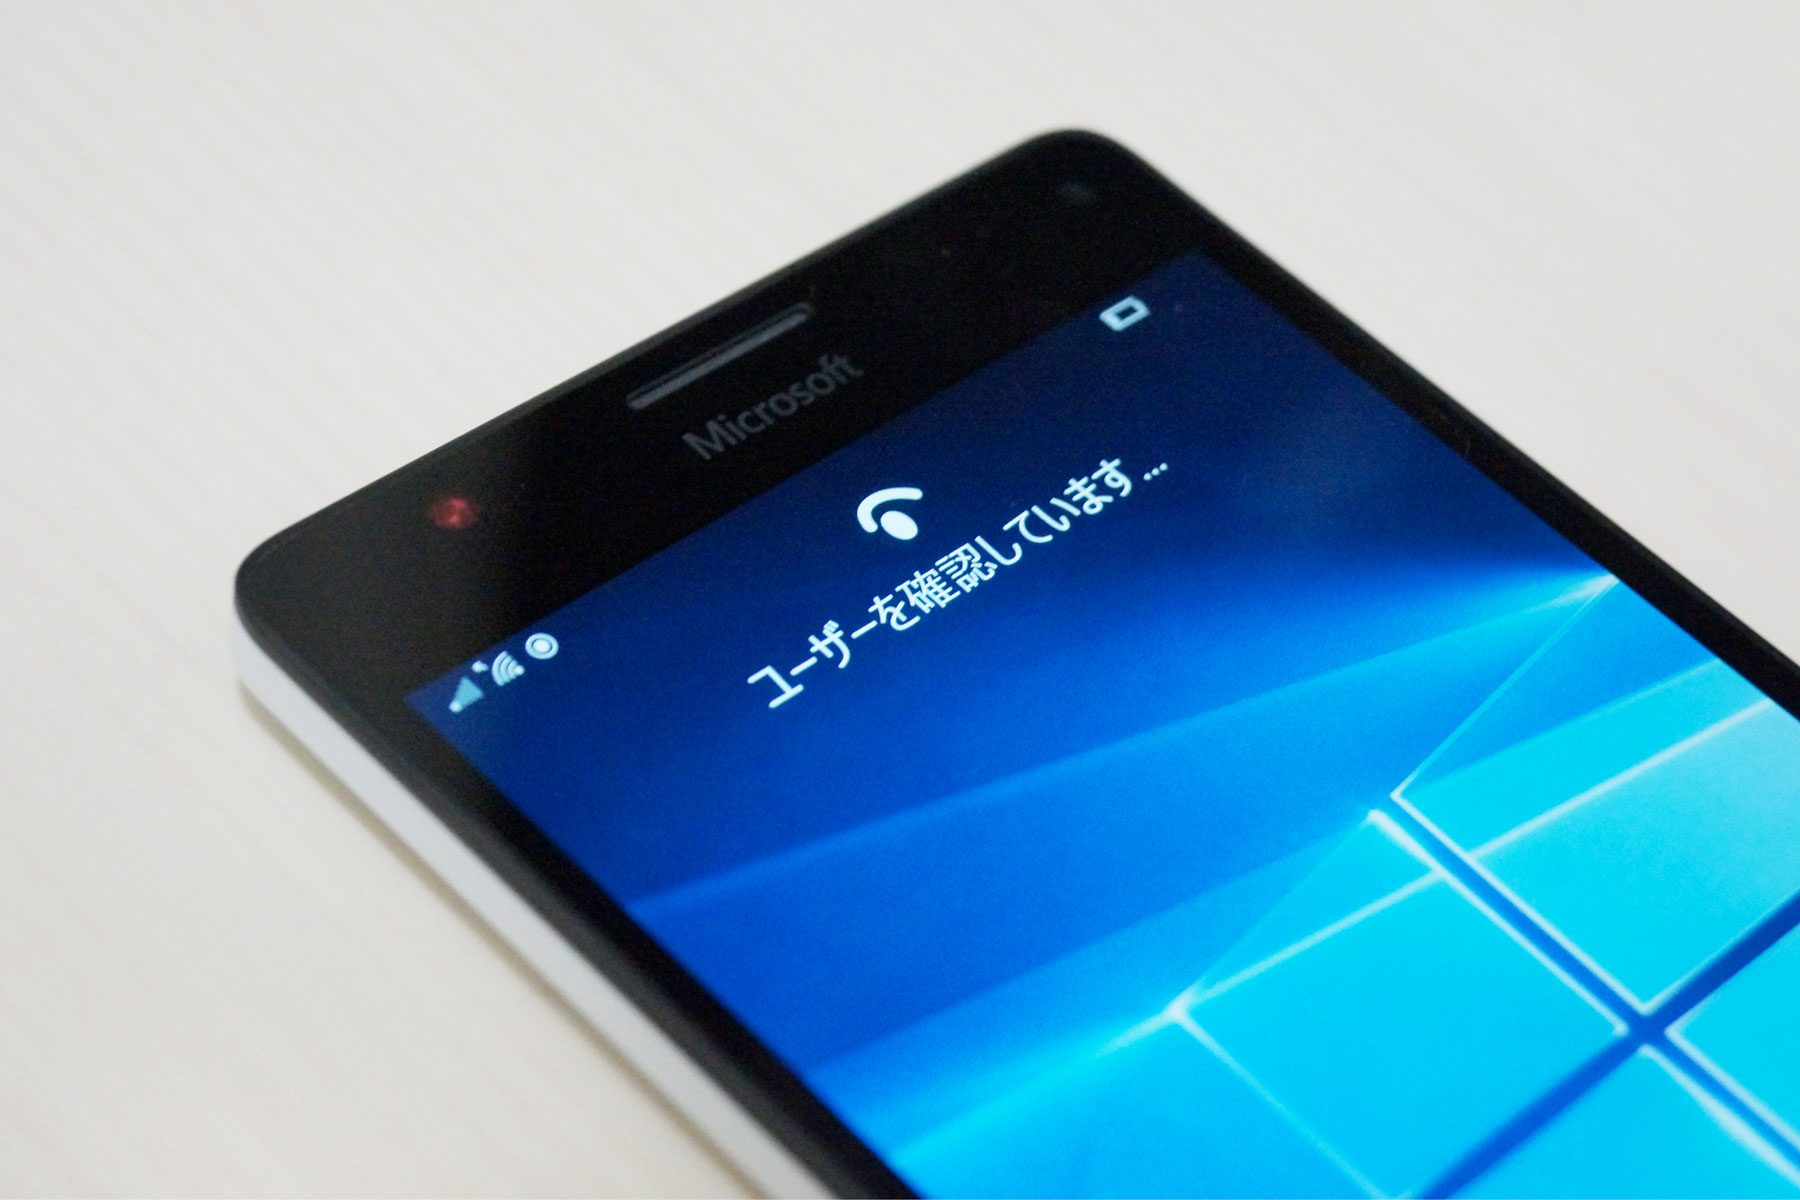 lumia950xl-windowshello